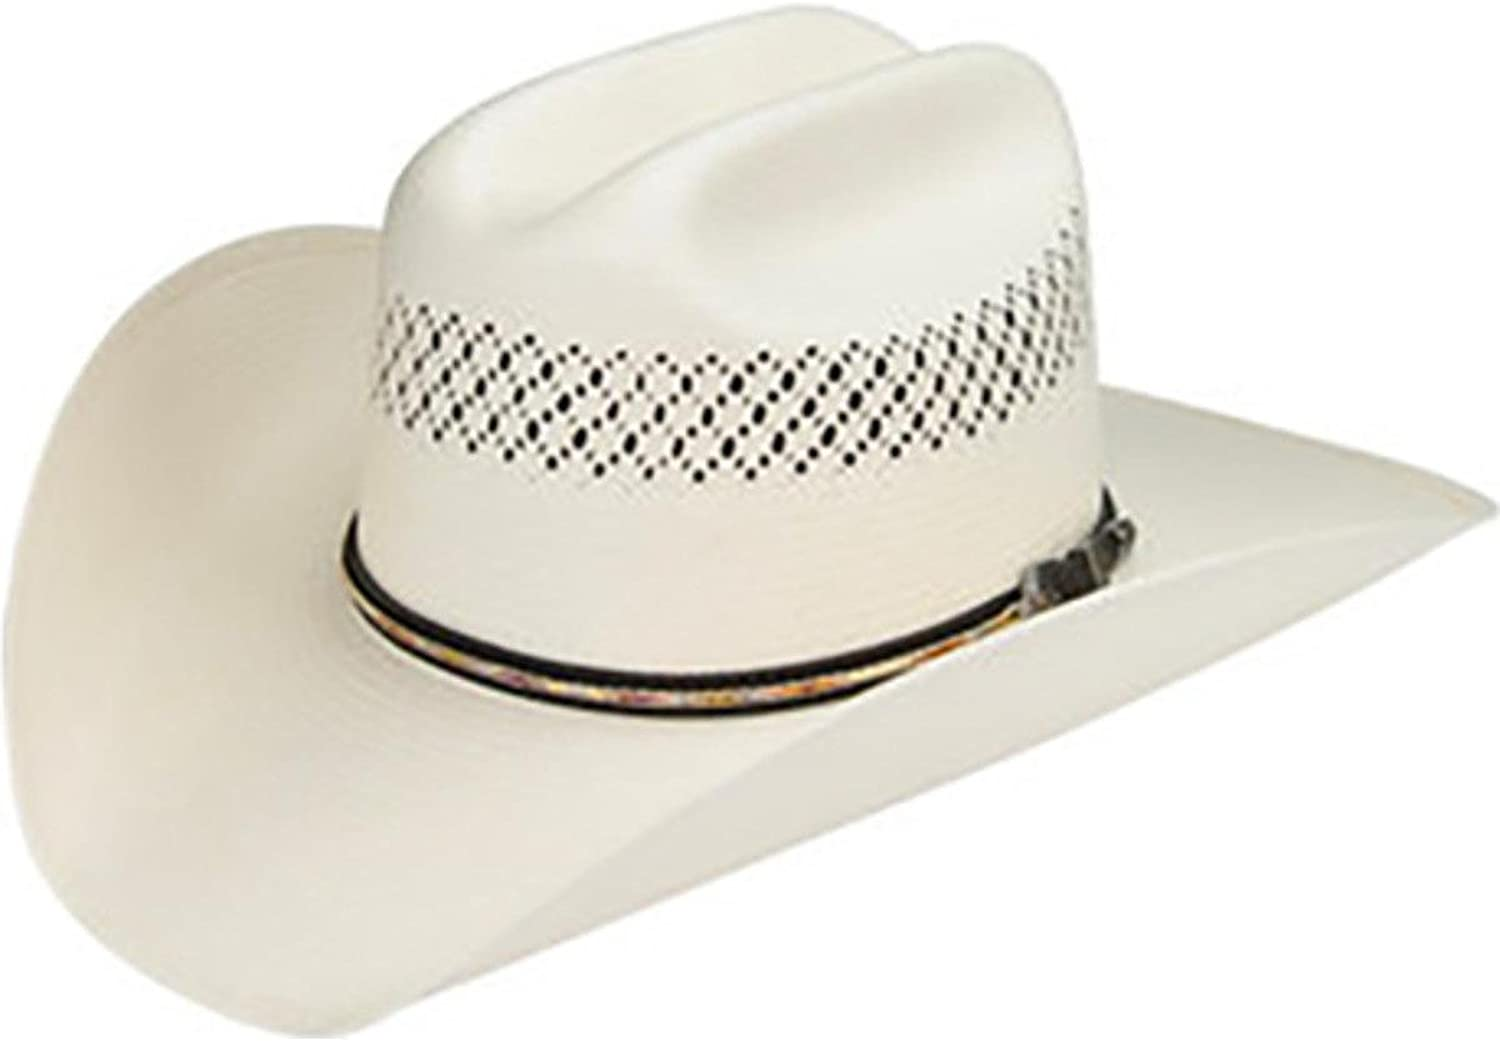 Master Hatters Men's Air Scottsdale 20X Straw Vented Cowboy Hat Natural 7 3/8